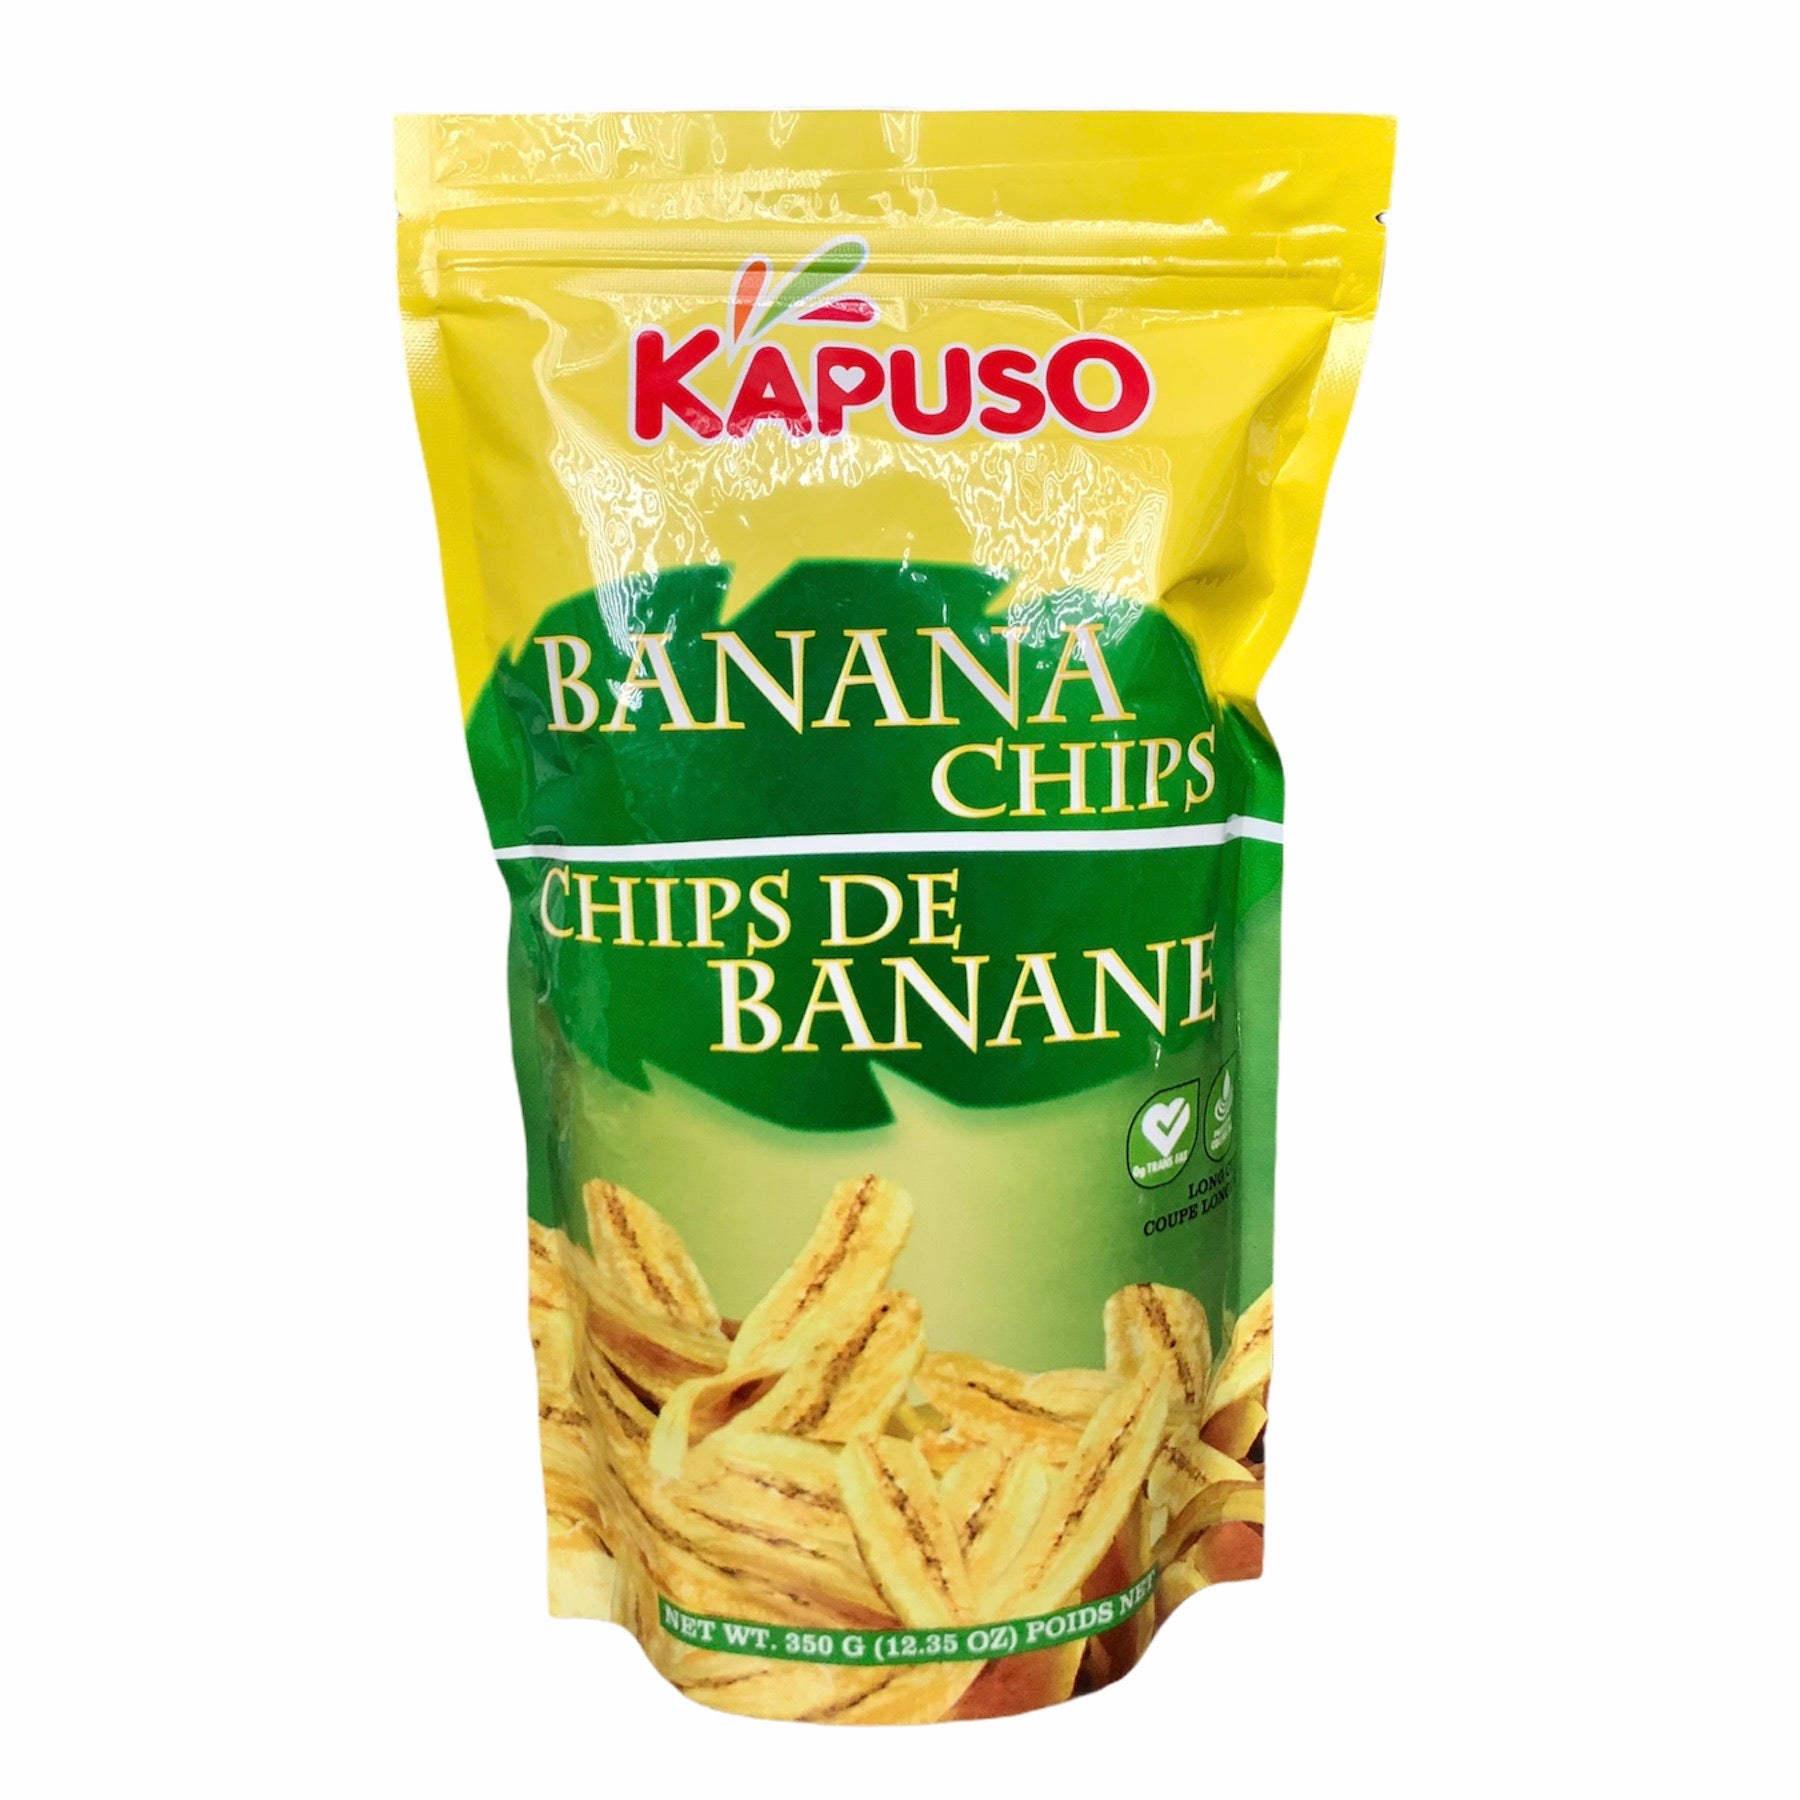 Kapuso - Banana Chips (BIG) 12.35 OZ